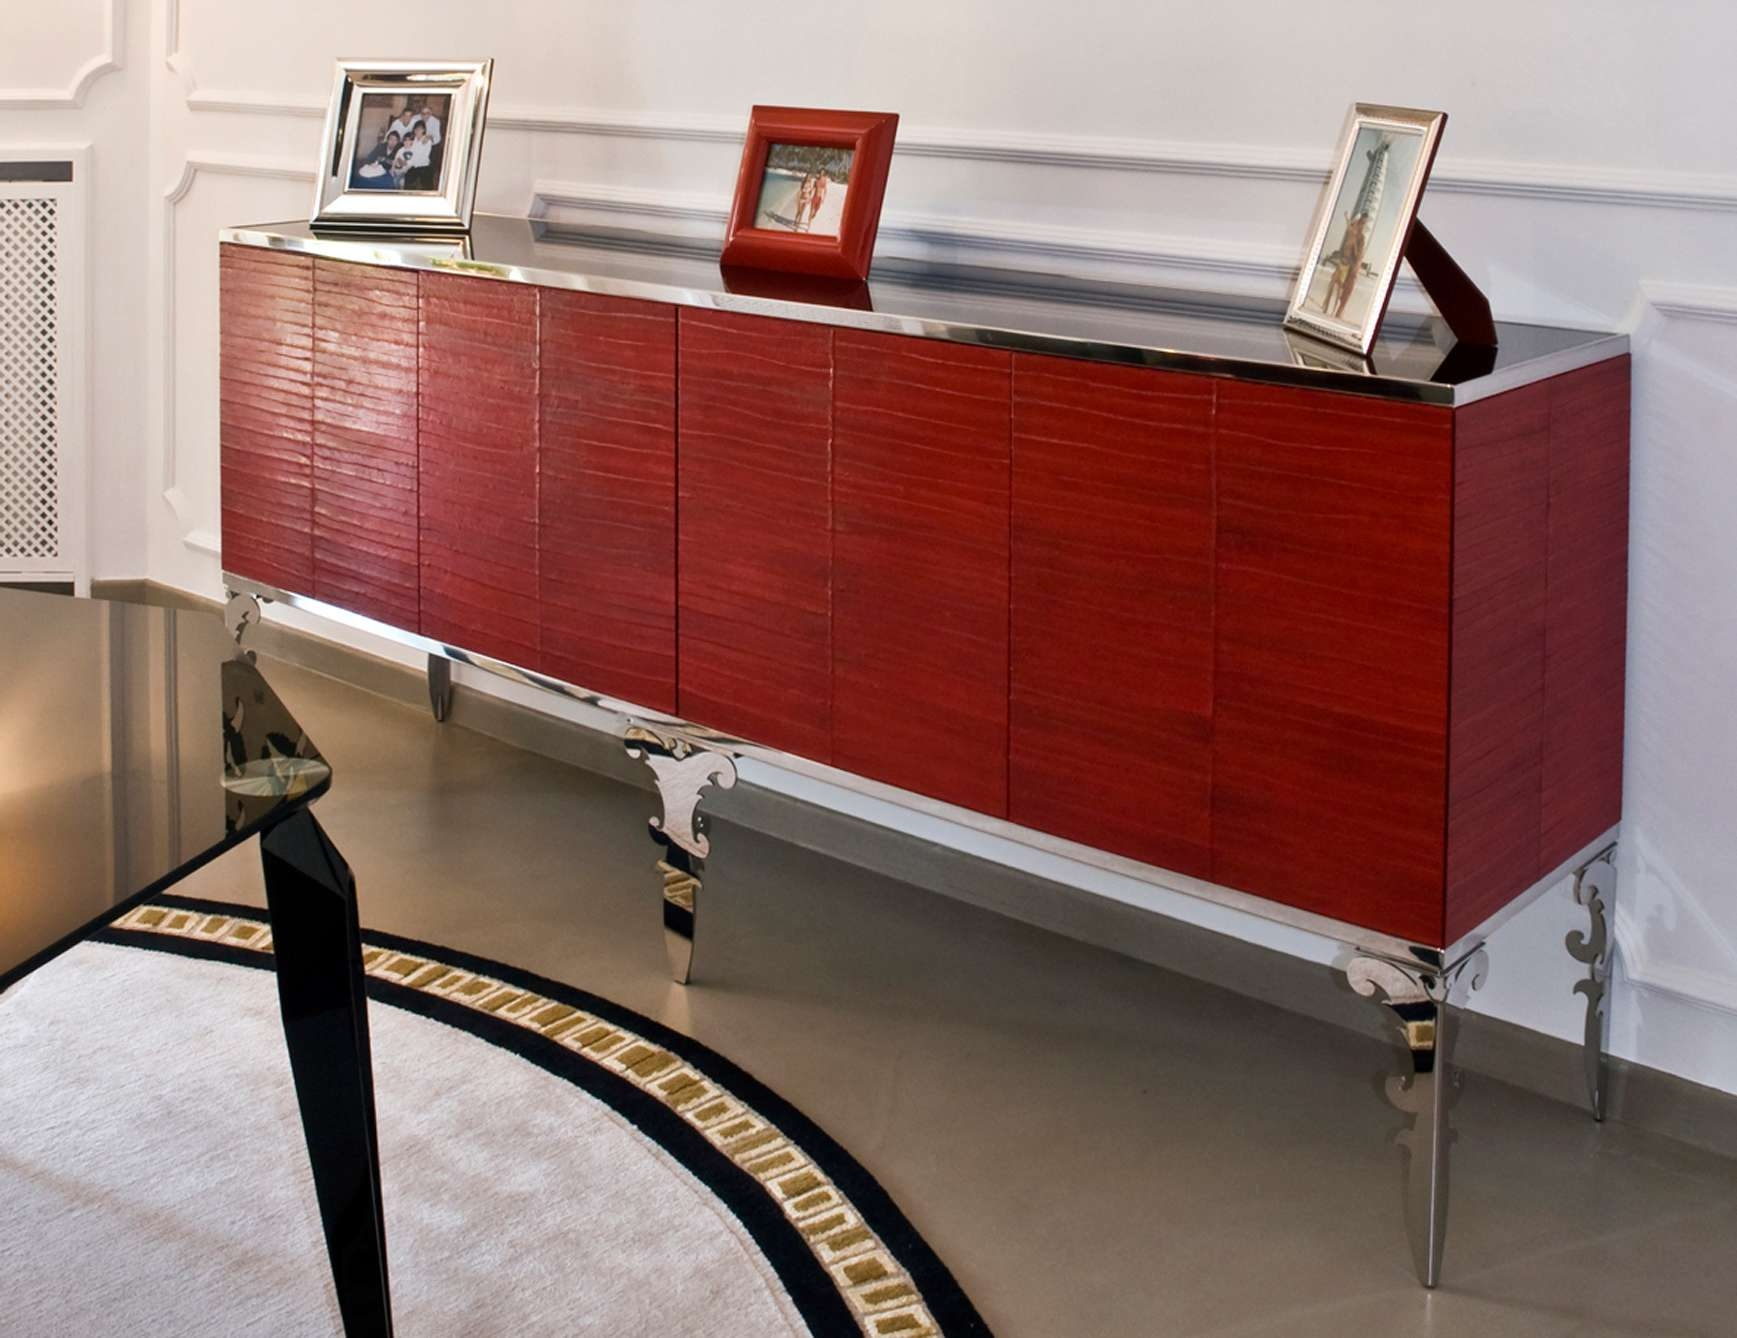 Credenzas And Sideboards – Home Idea Within Credenzas And Sideboards (View 10 of 20)